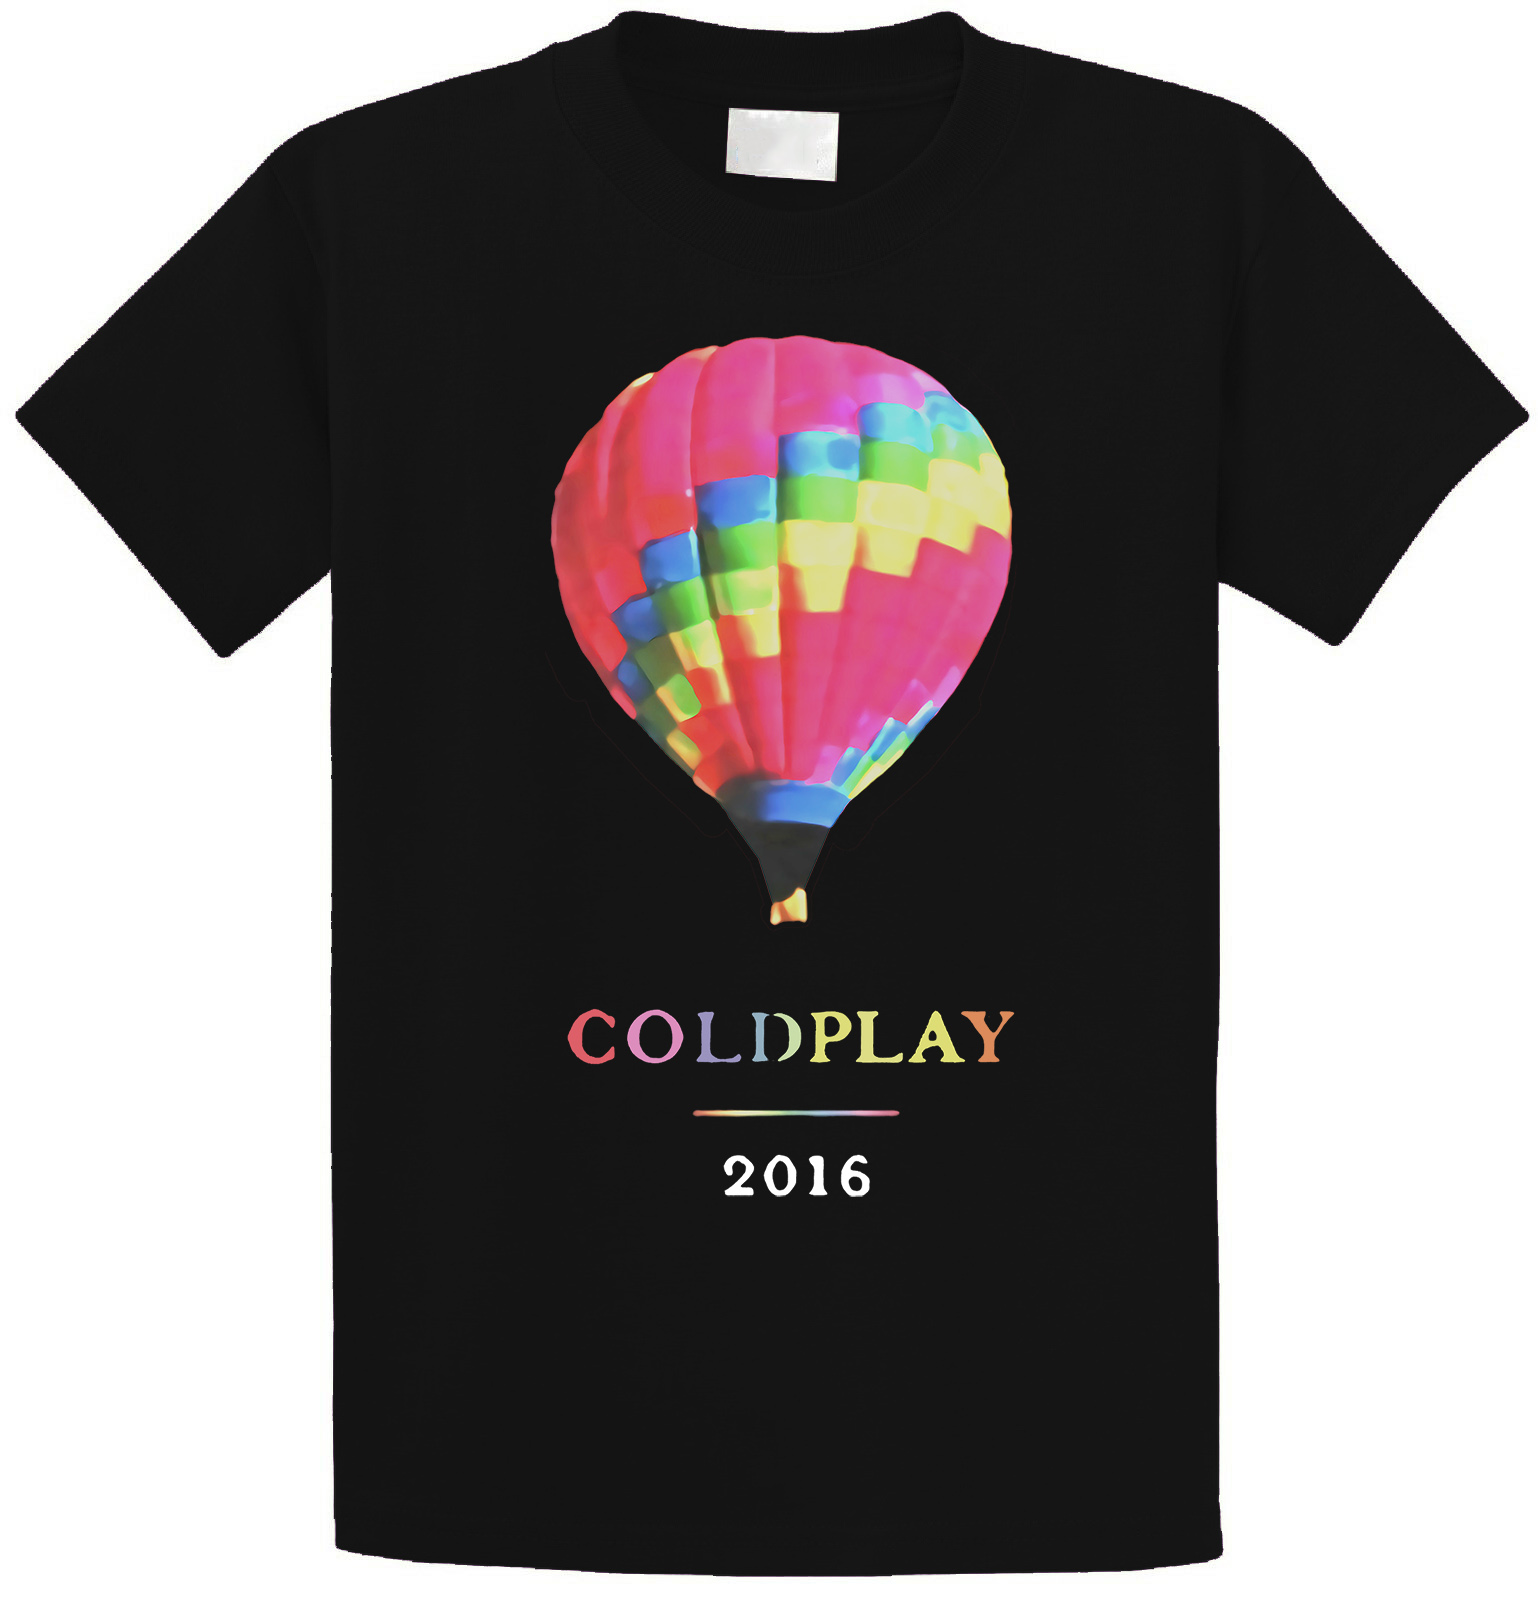 Casual T Shirts  Graphic Men Coldplay Tour 2016 O-Neck Short-Sleeve Tees